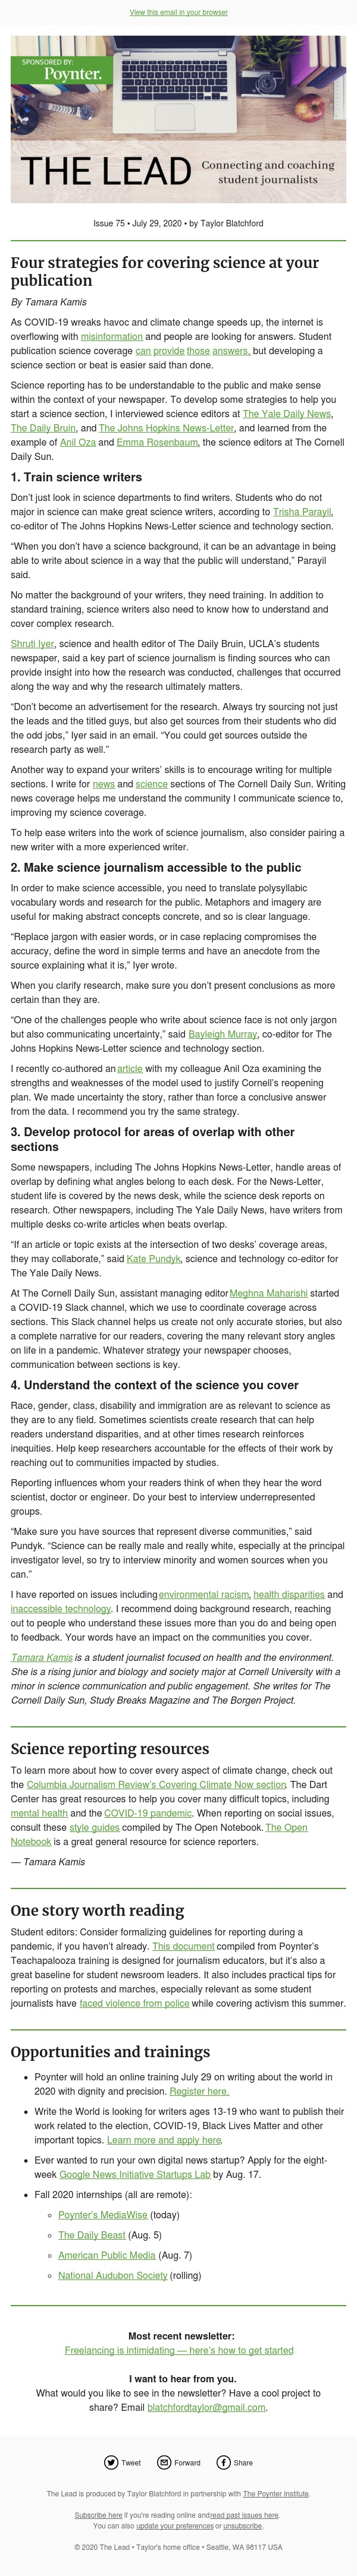 Four strategies for covering science at your publication